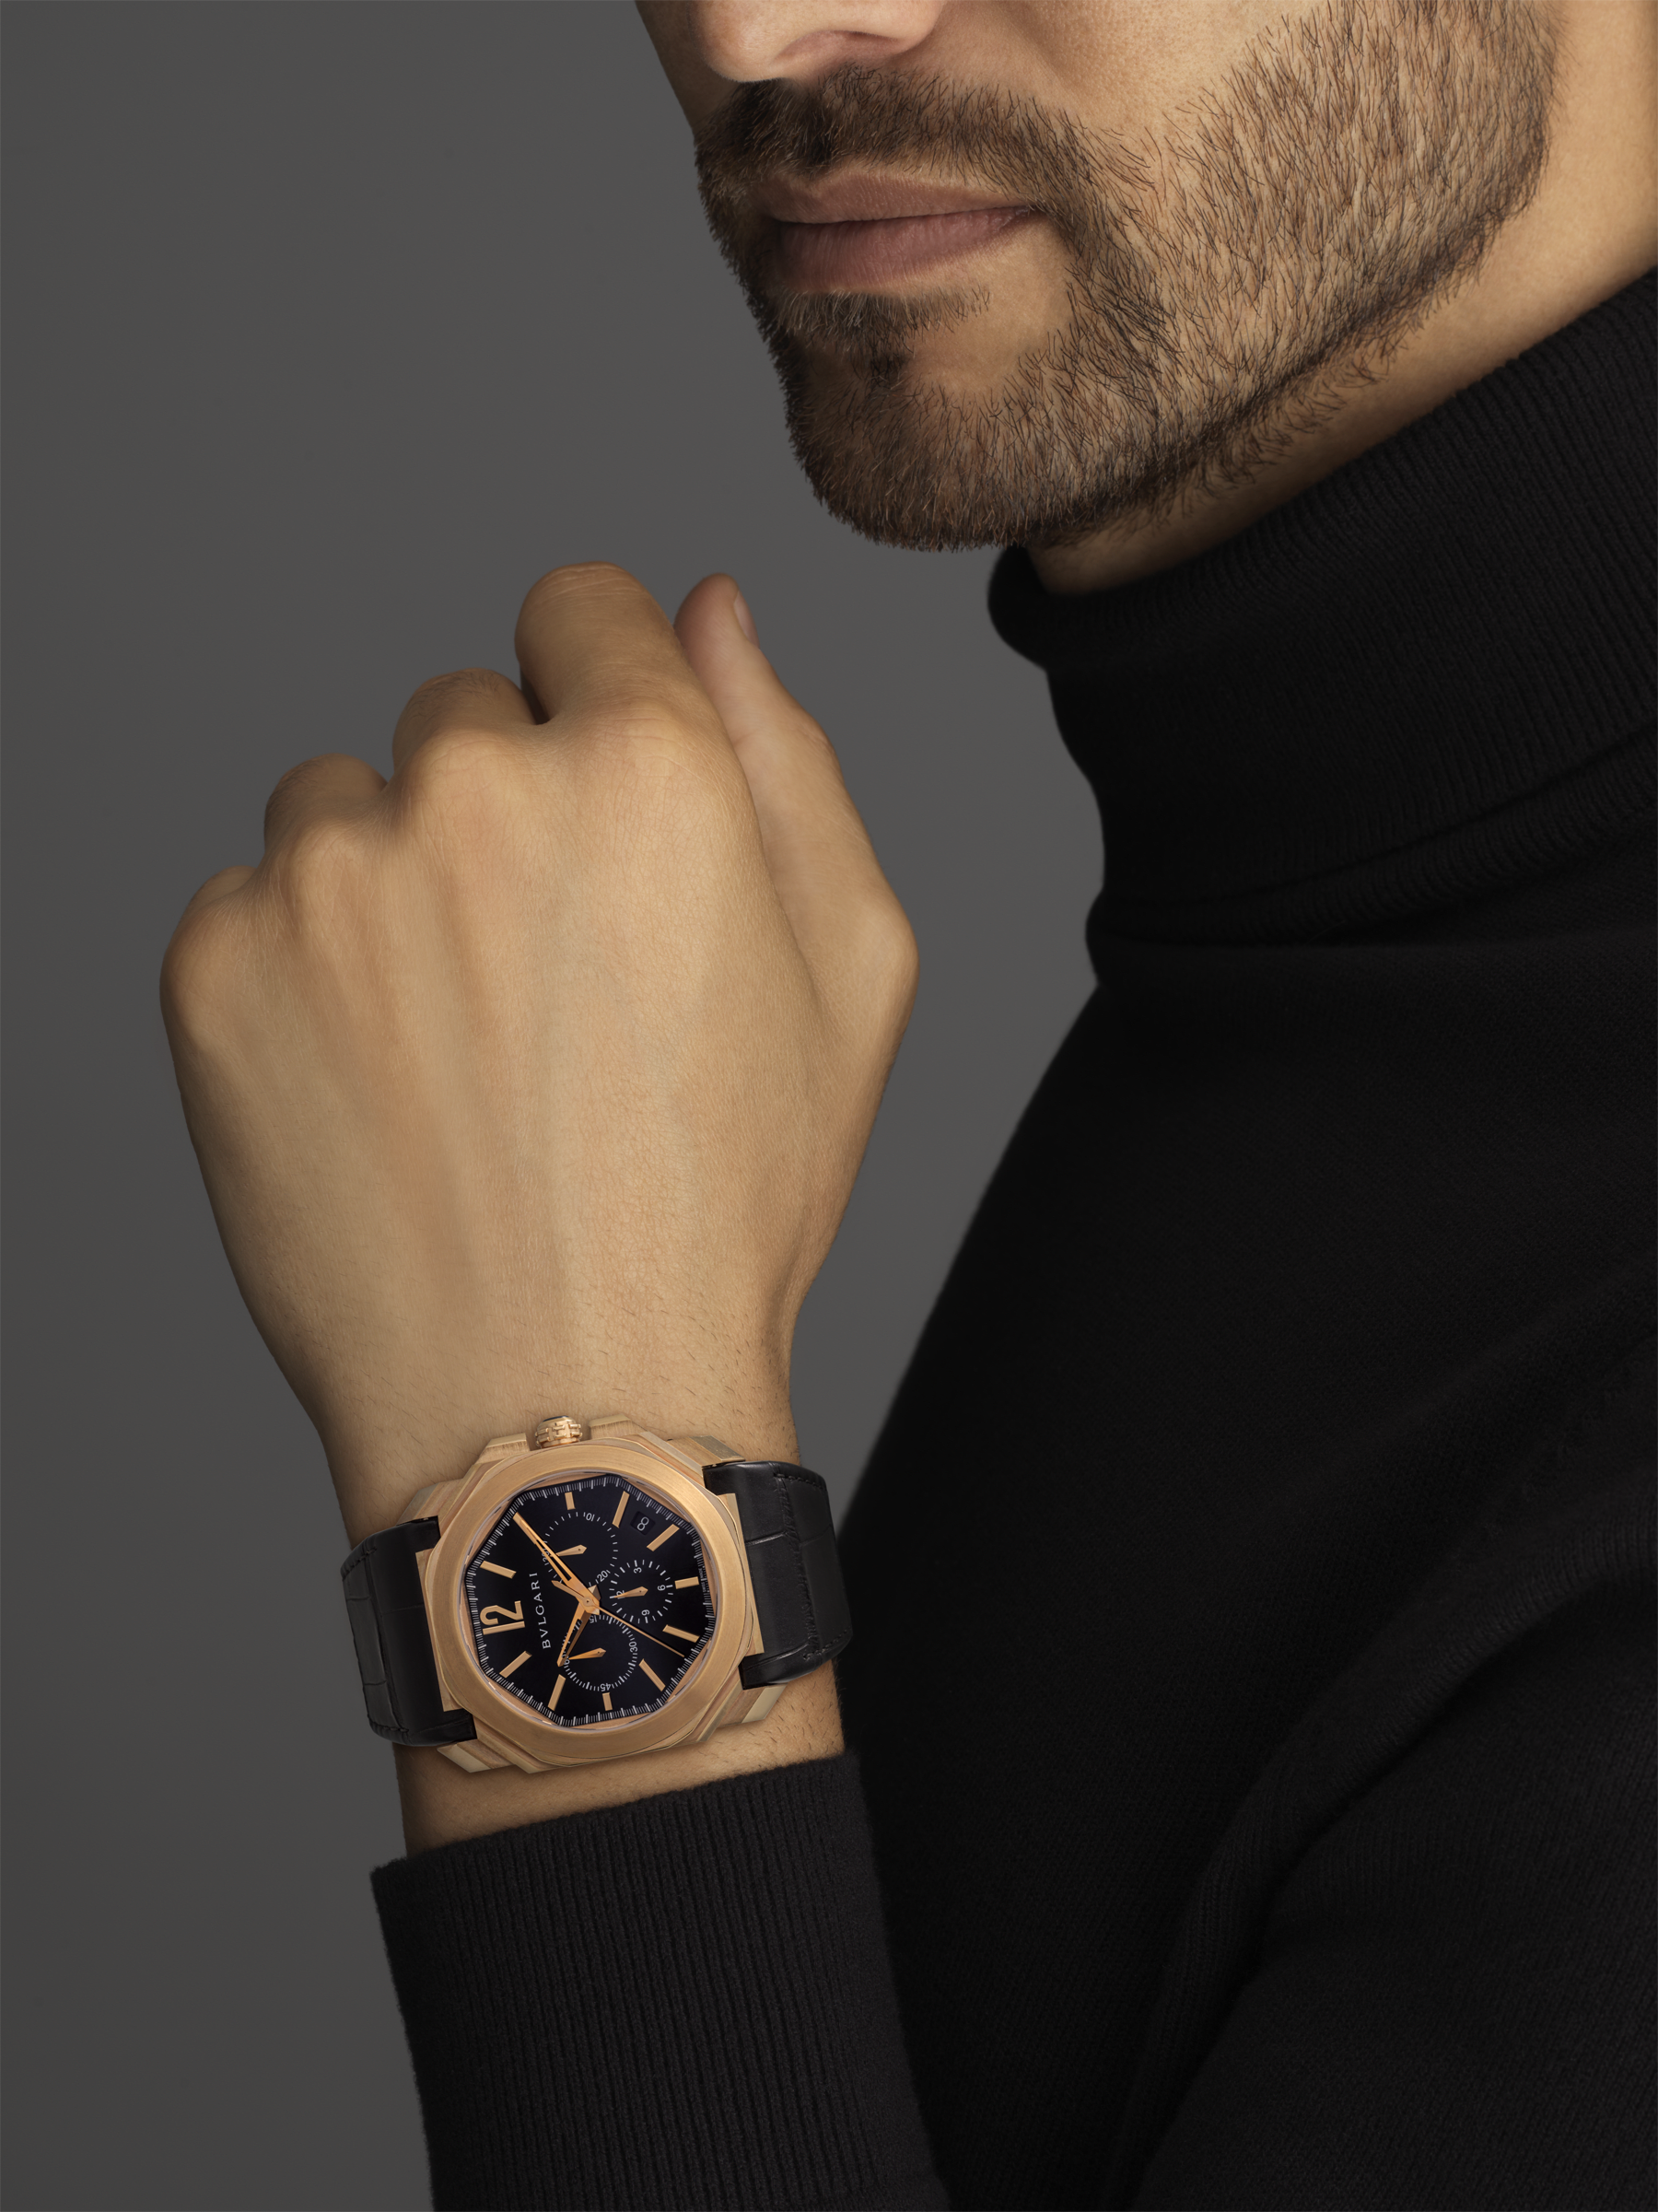 Octo watch with mechanical manufacture movement, high-frequency chronograph, automatic winding and date, 18 kt rose gold case, black lacquered dial and black alligator bracelet. 102115 image 2